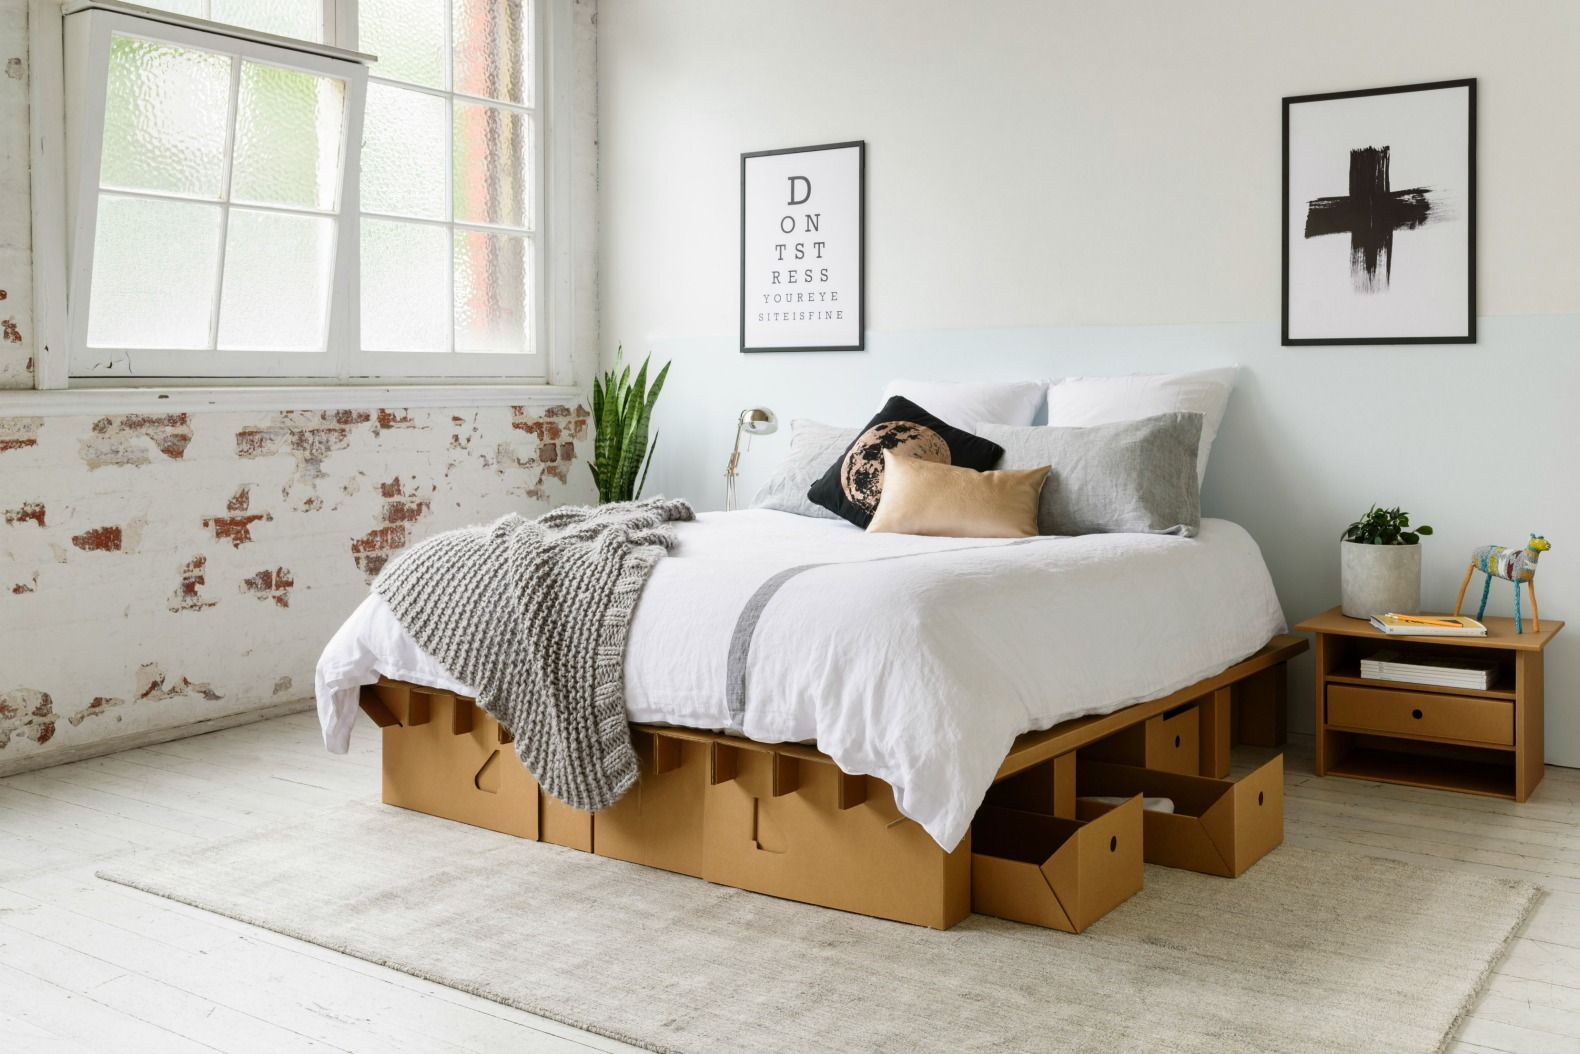 Cardboard Furniture | Inhabitat - Green Design, Innovation ...